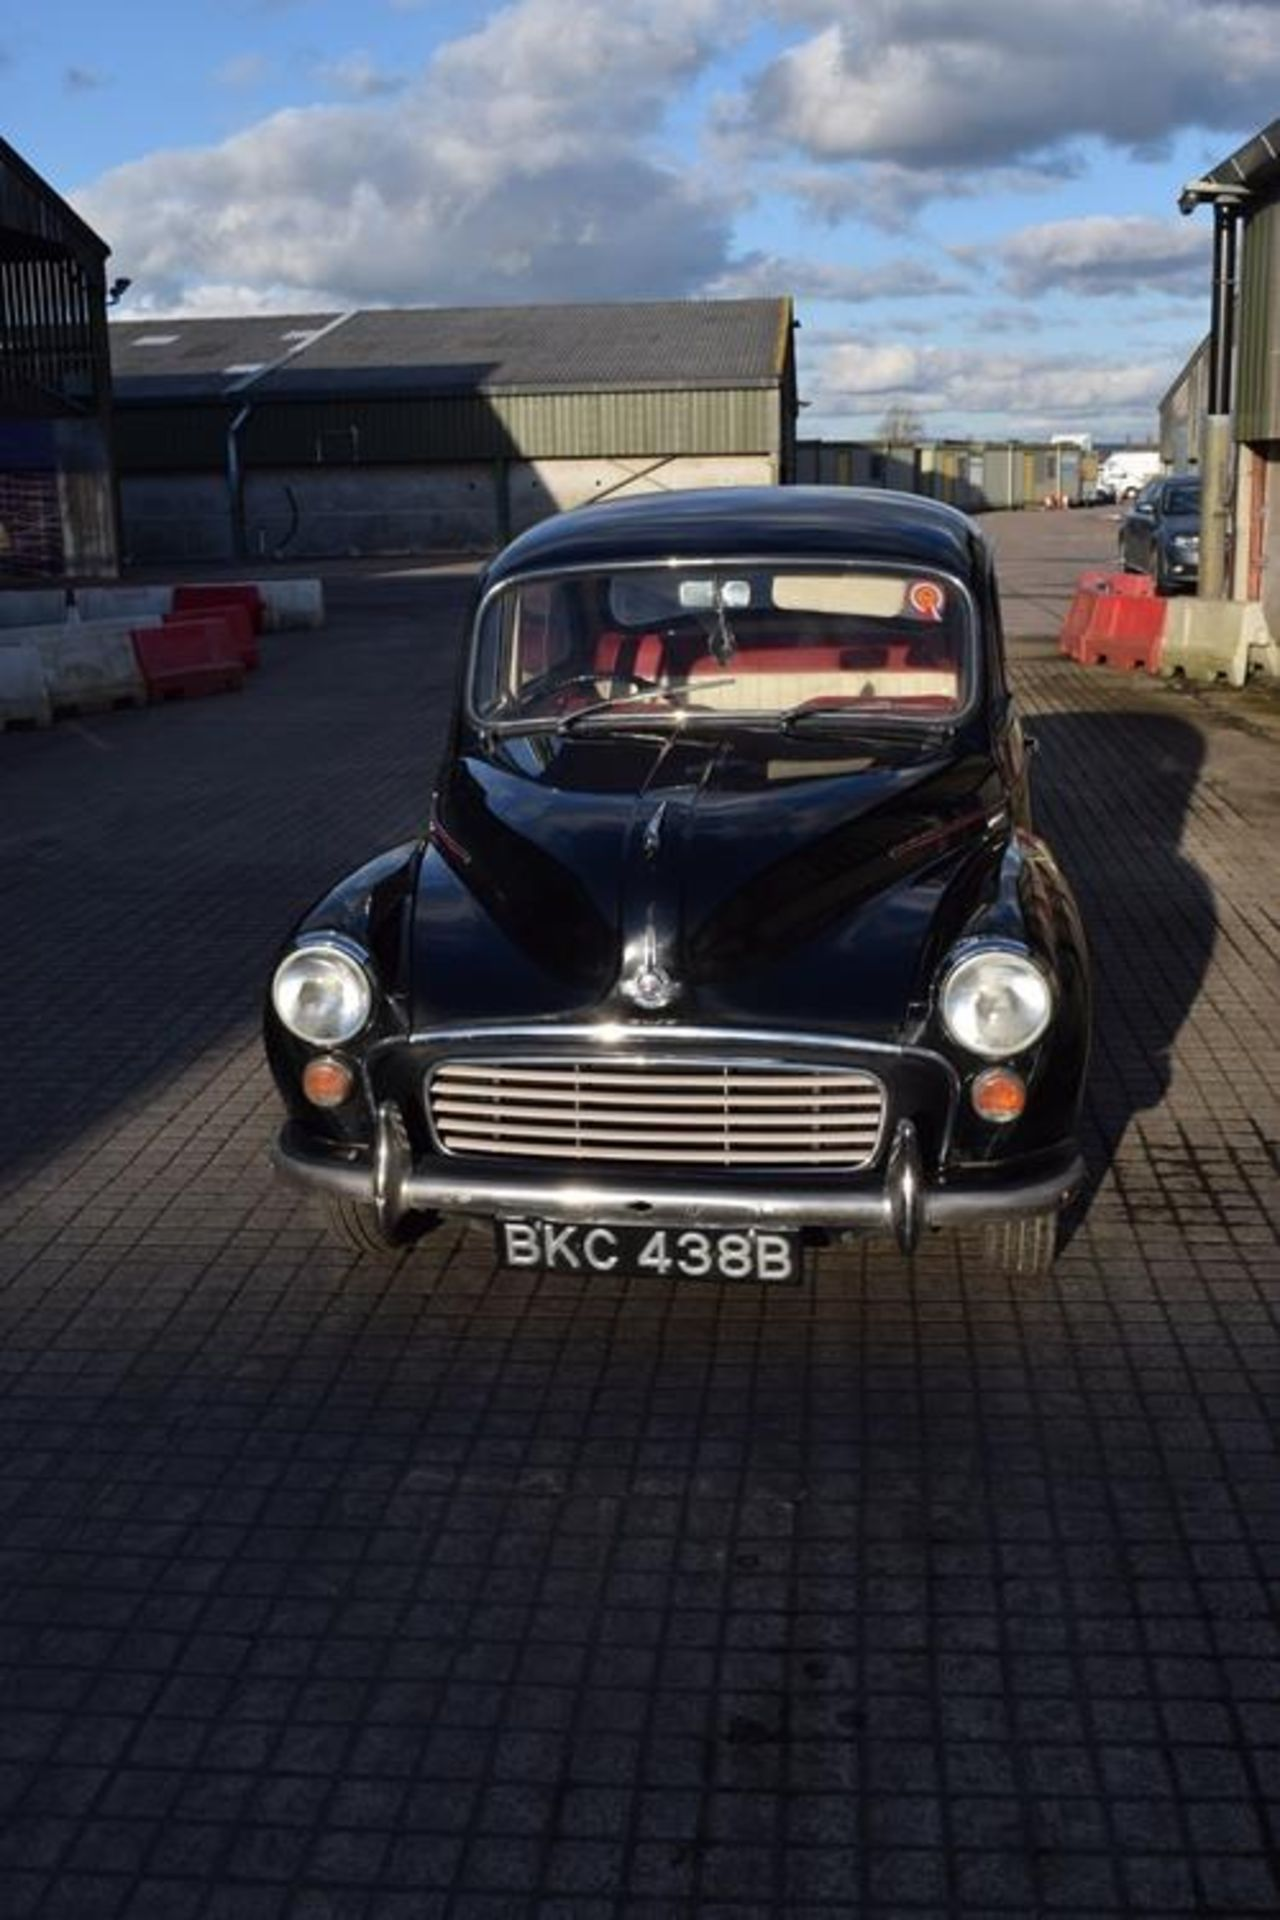 1964 Morris Minor 1000 in original black. The car has been restored with new flooring and vinyl - Image 13 of 16